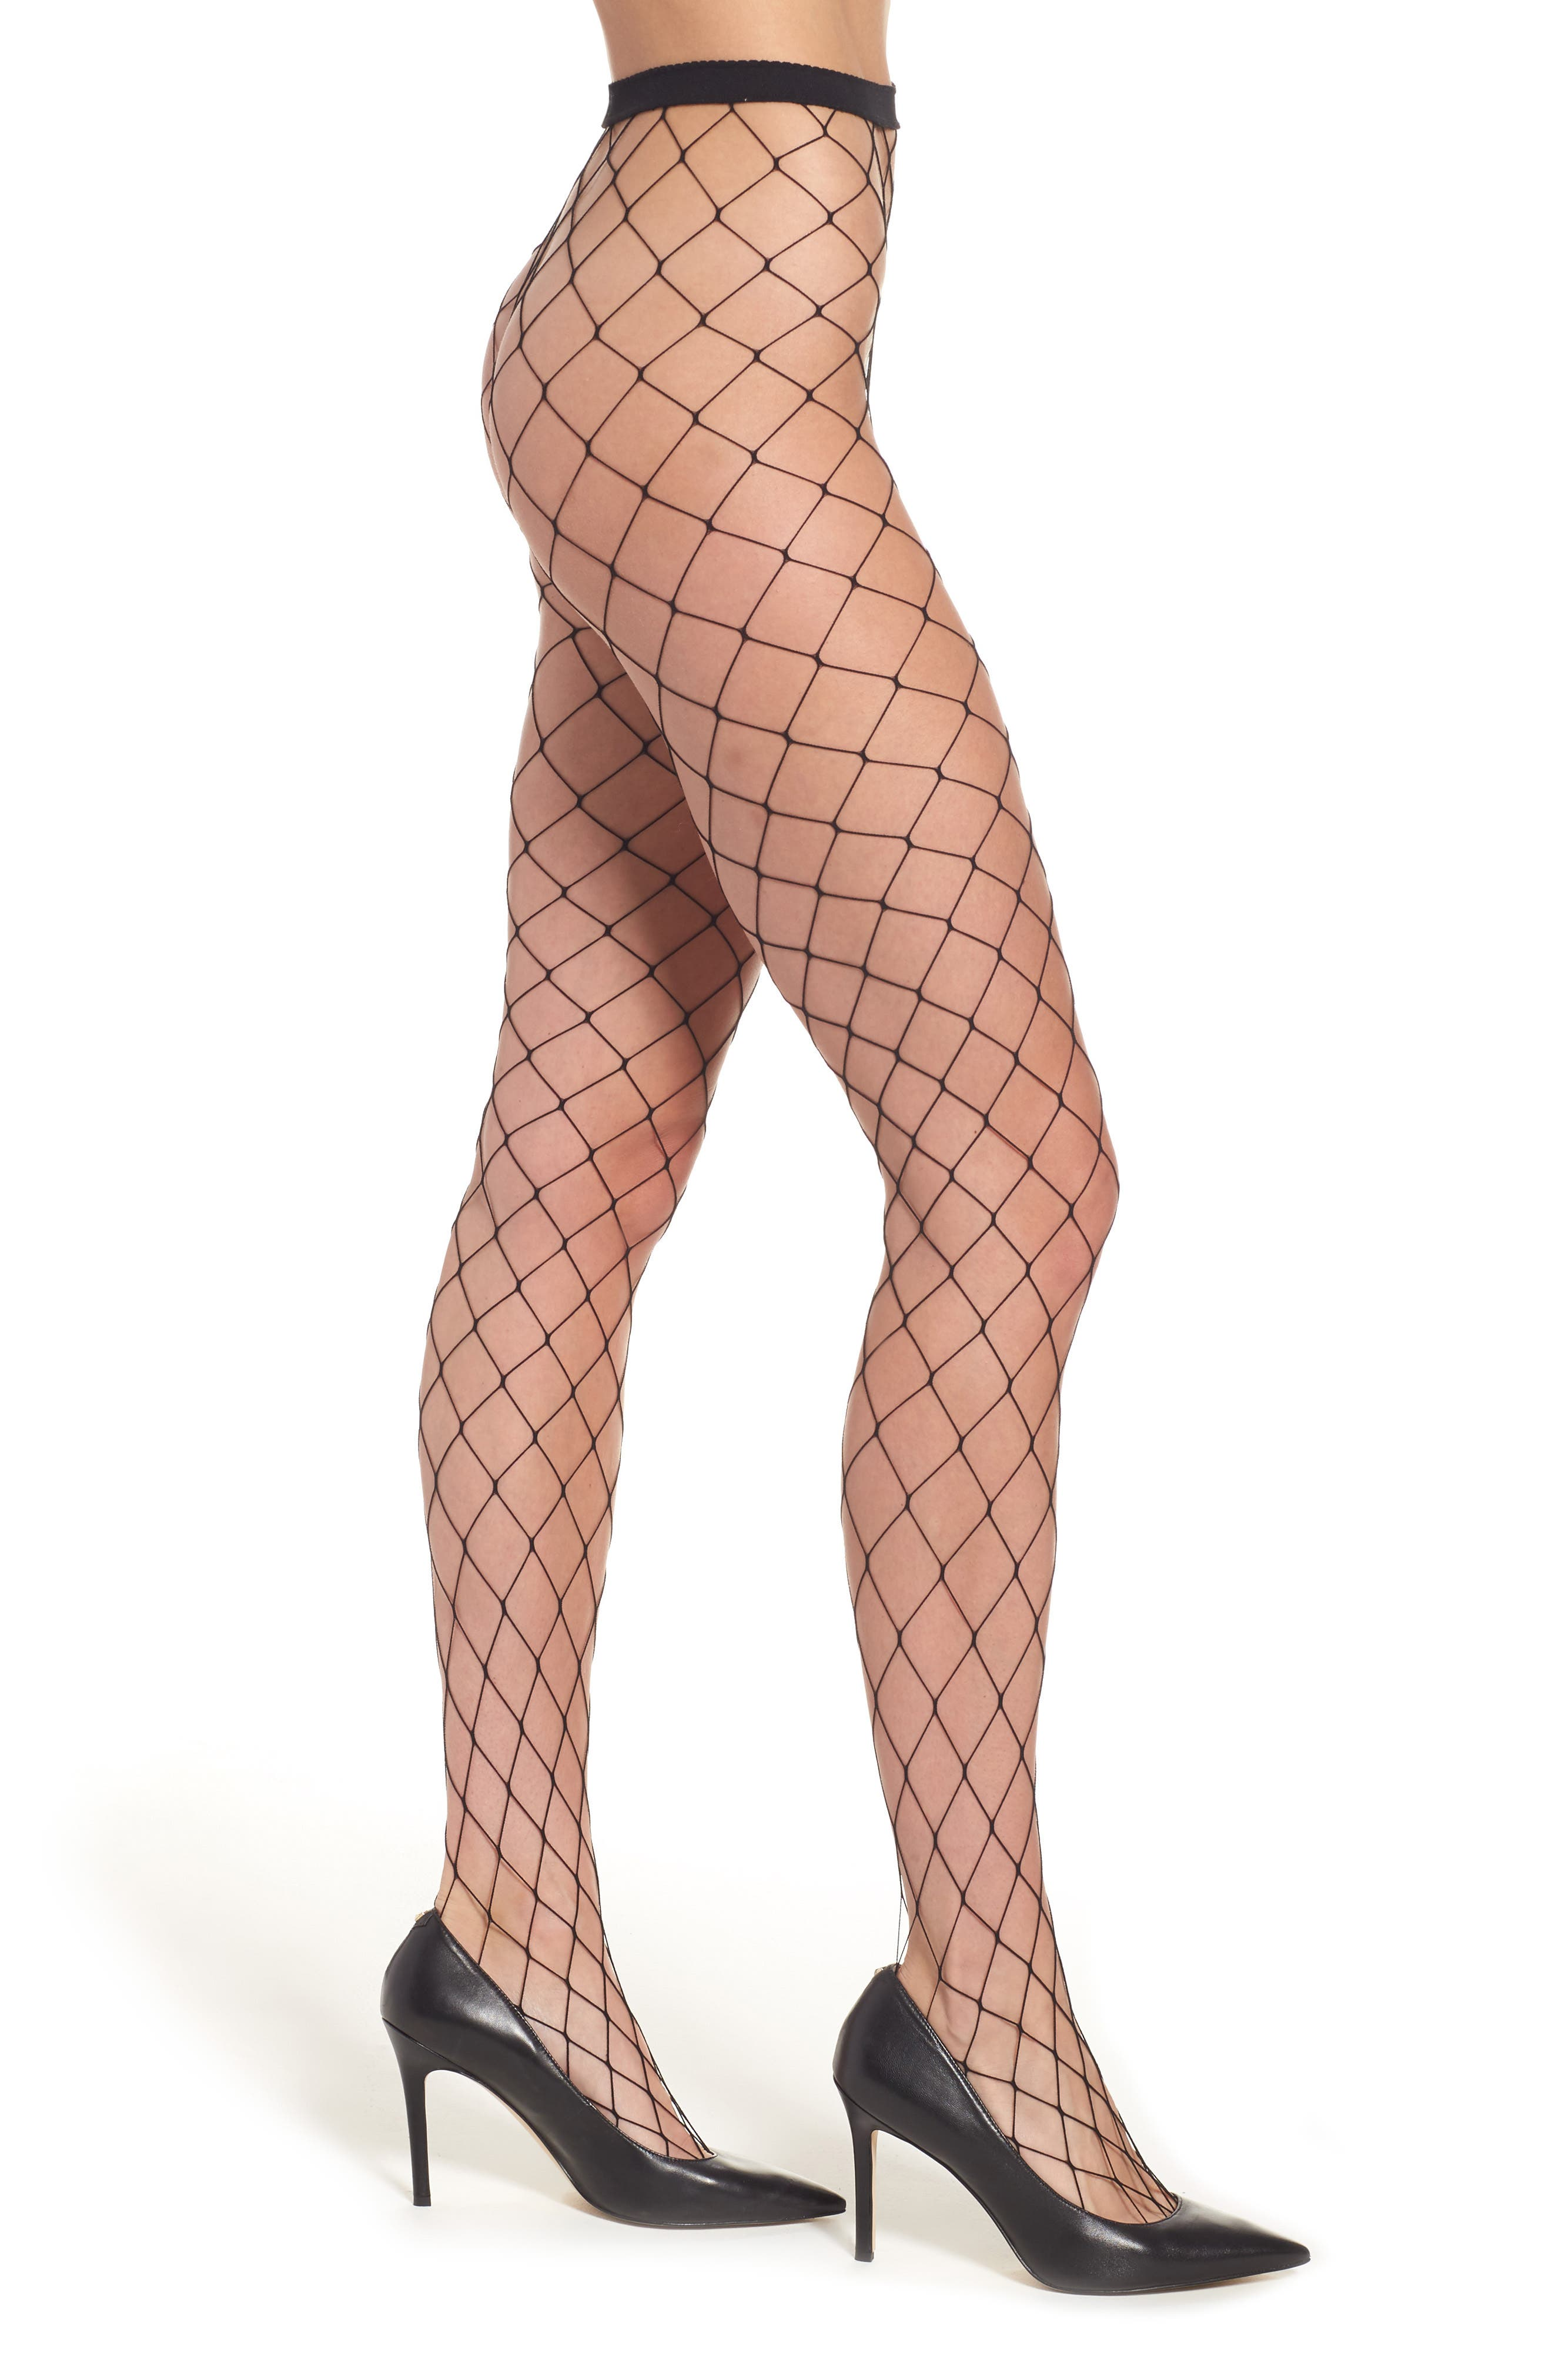 Nordstrom Fishnet Tights